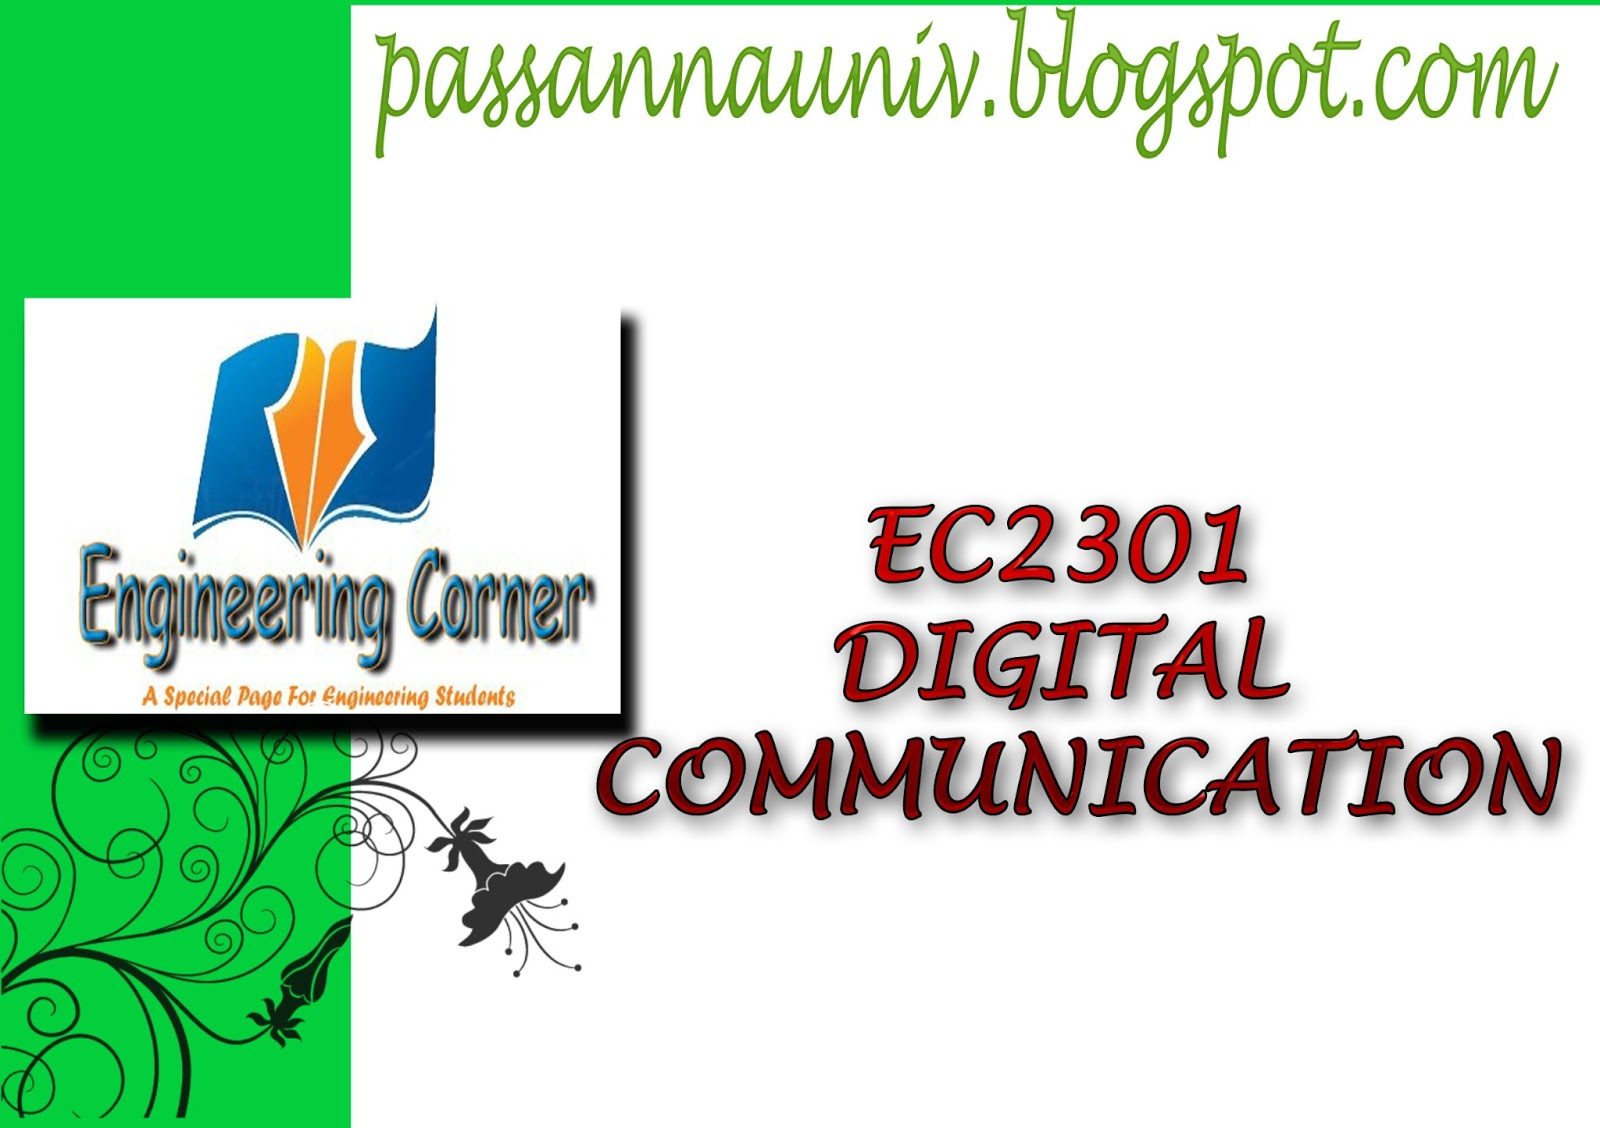 digital communication: